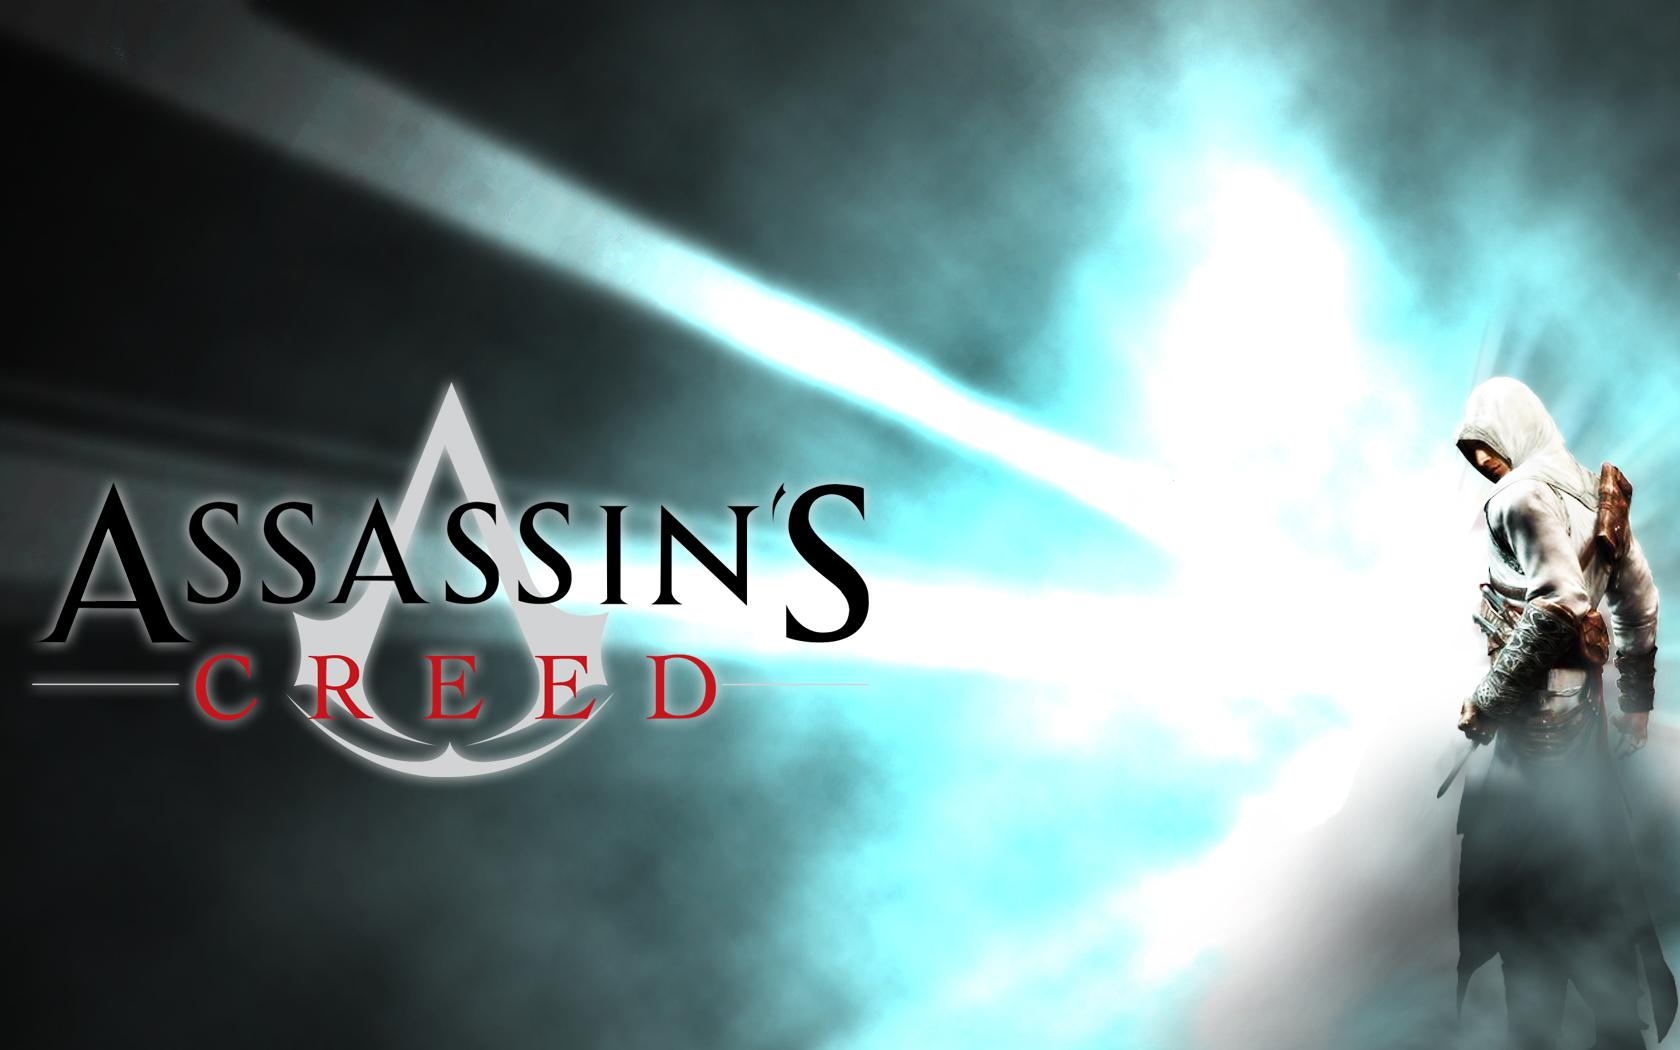 Assassin's Creed: Video Game that Became a Movie